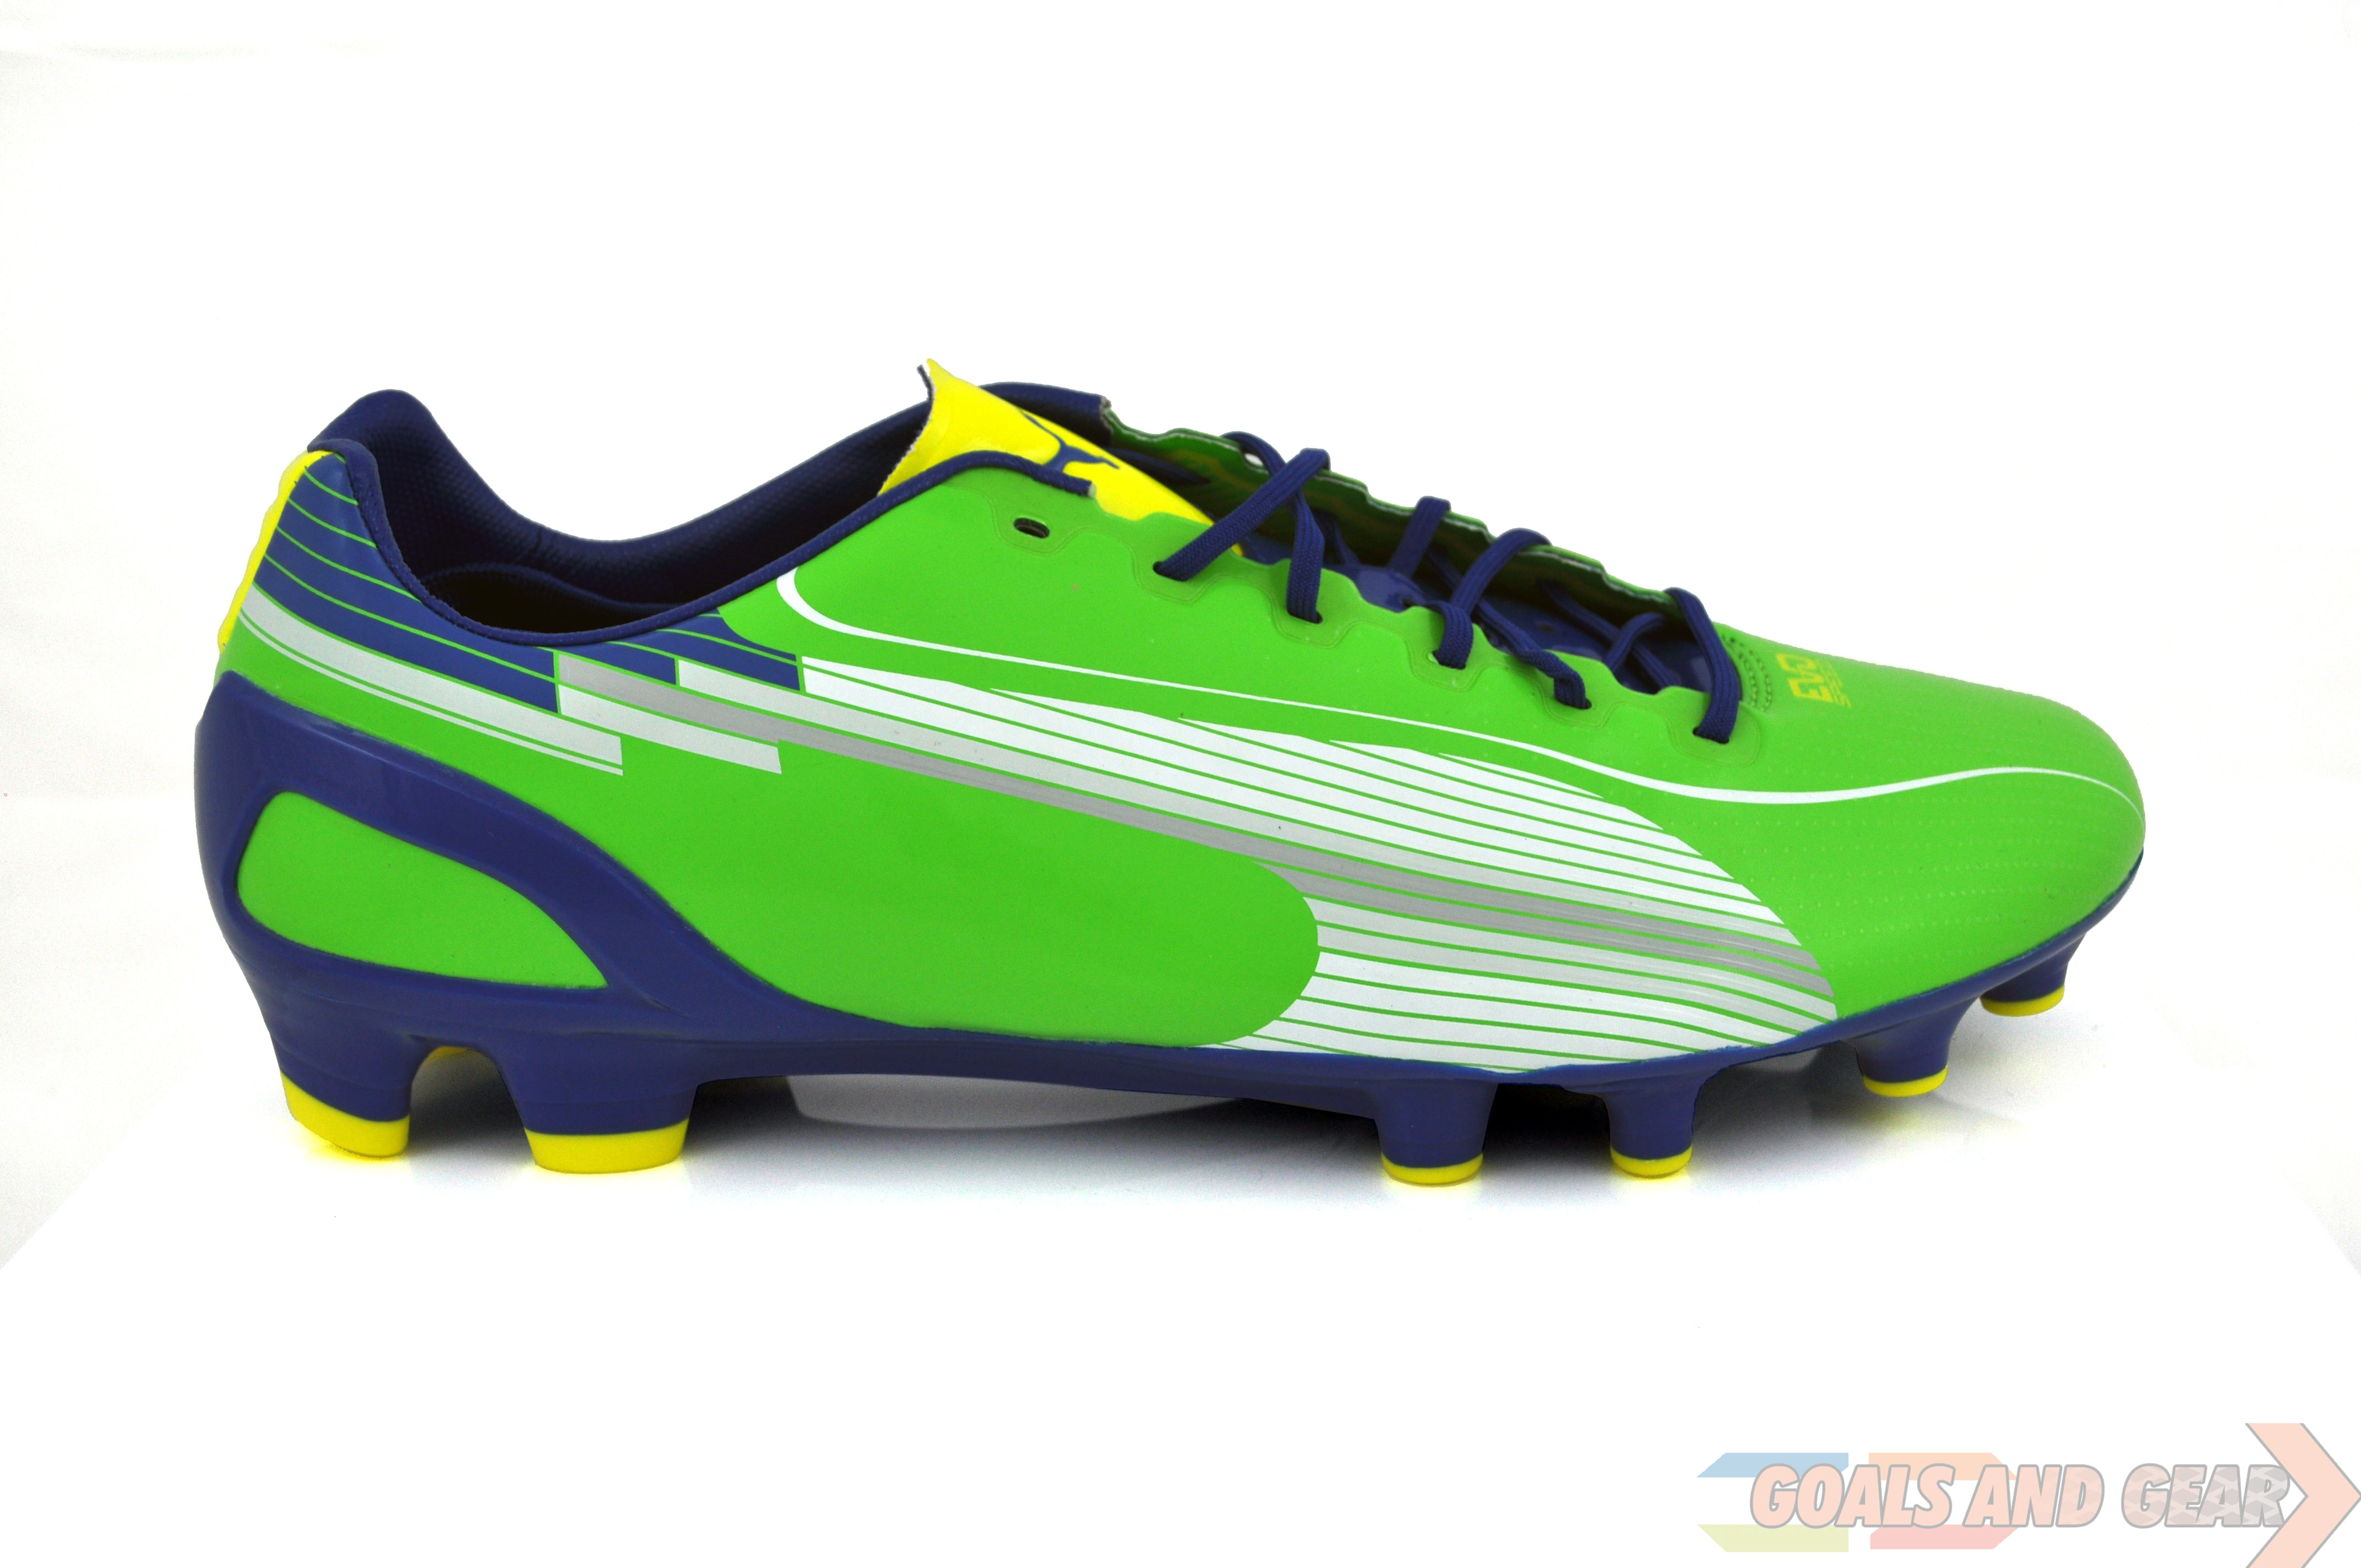 puma evospeed side view rainbow green